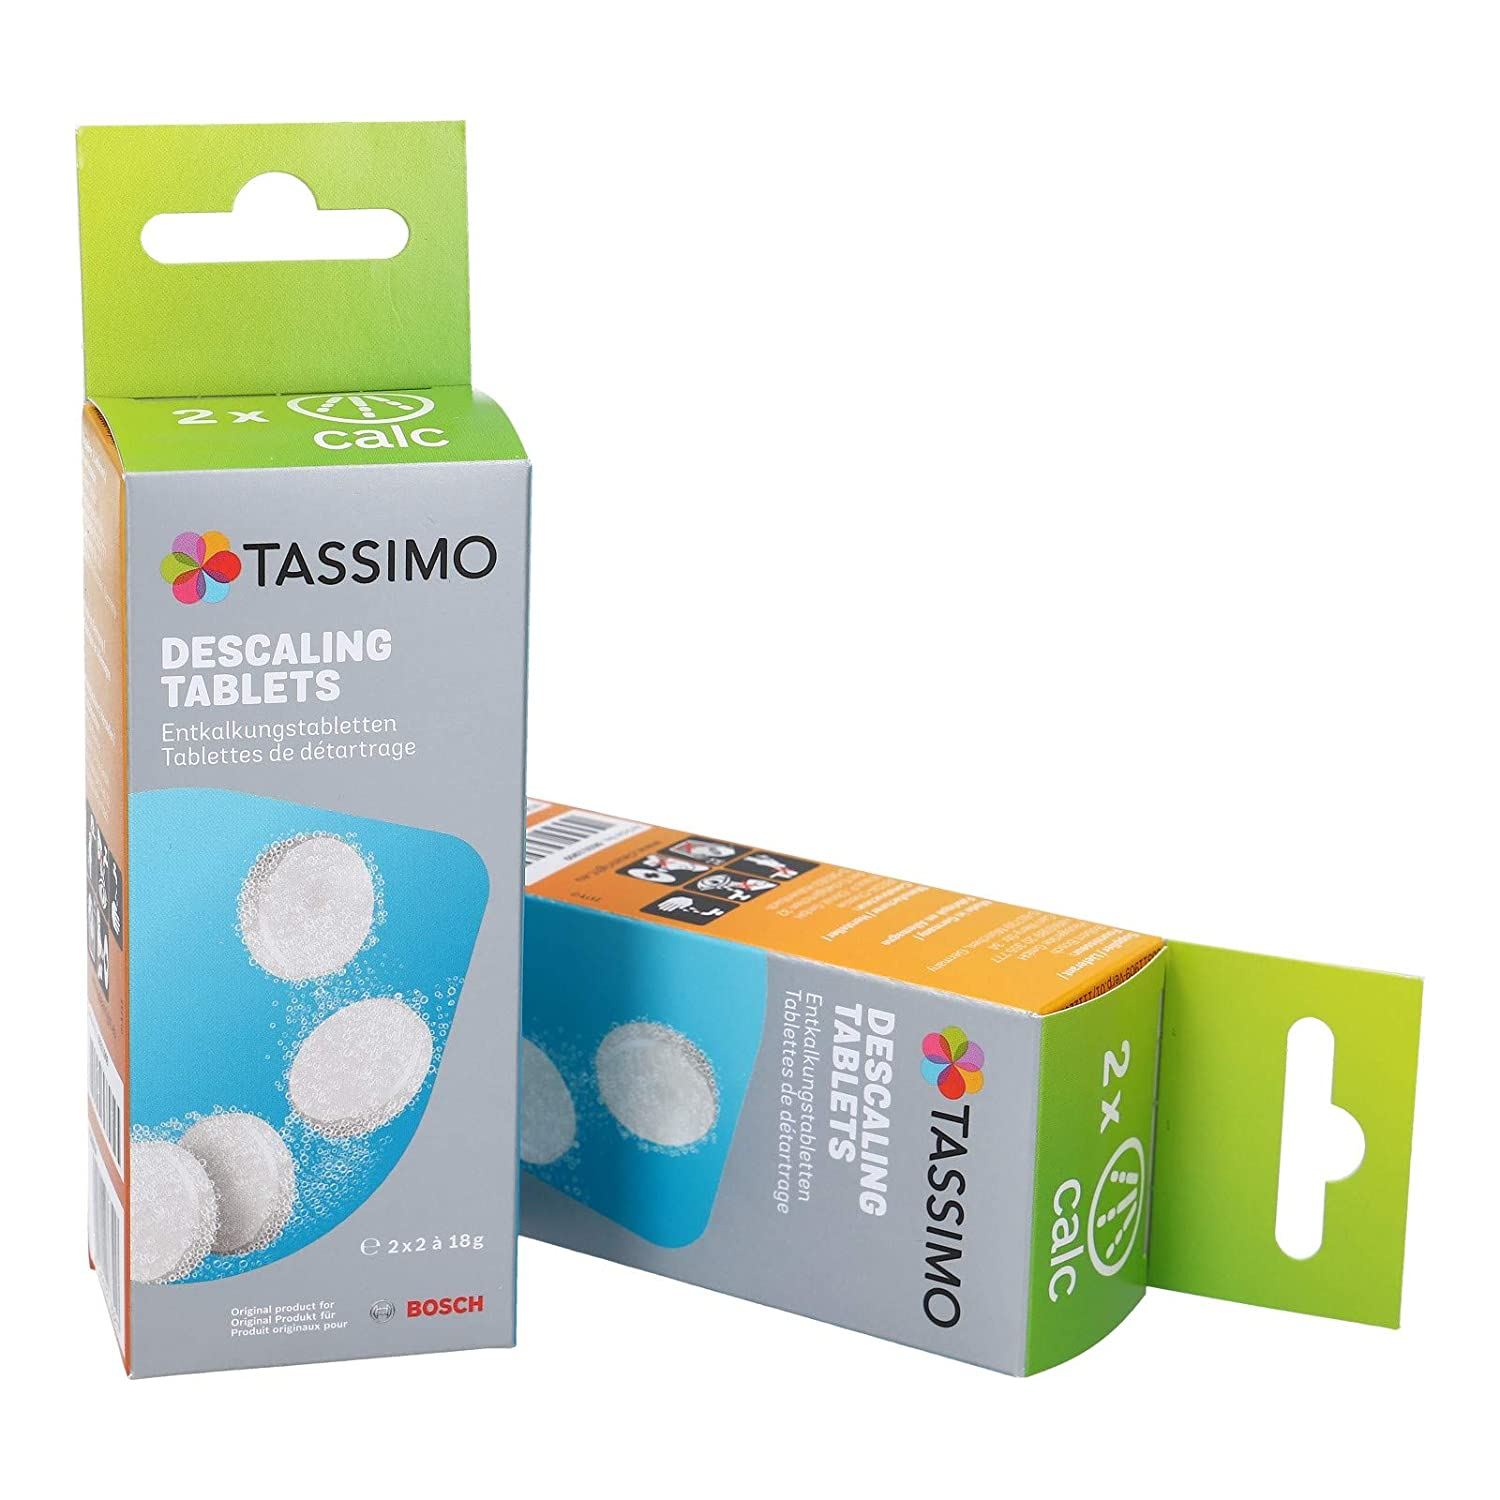 Bosch Original Tassimo Descaling Tablets Multi Pack 8 Tablets (4 x 2) by Tassimo